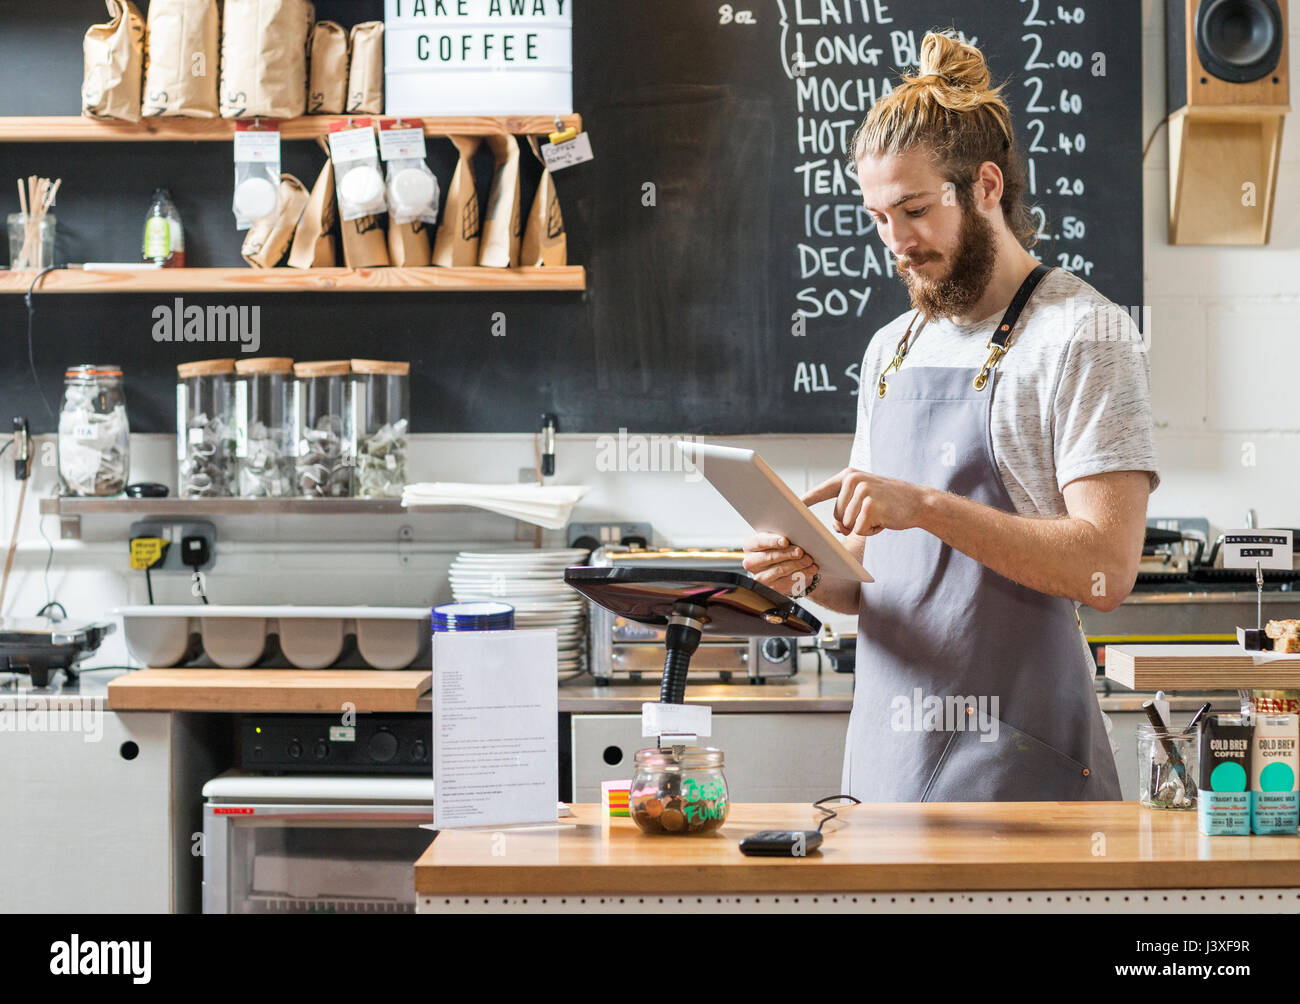 young man behind a counter in a cafe using a tablet - Stock Image